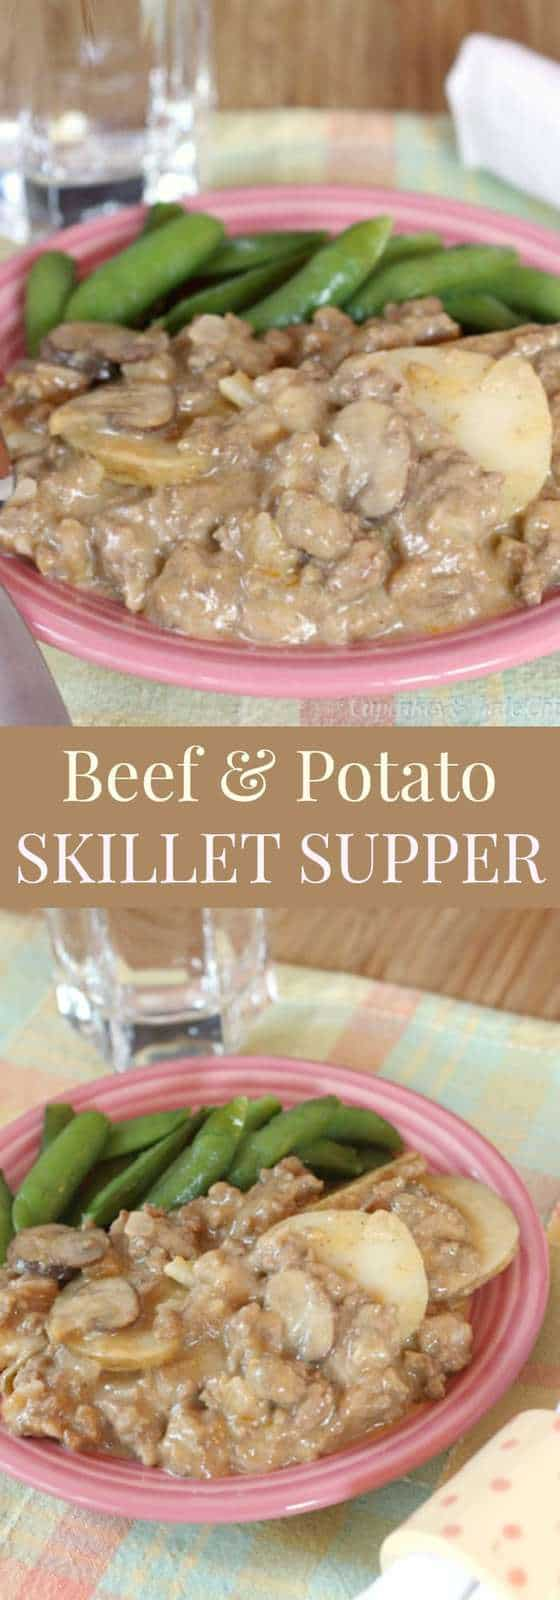 Beef and Potato Skillet Supper - a childhood favorite recipe reinvented with fresh ingredient and no canned cream soup | cupcakesandkalechips.com | gluten free